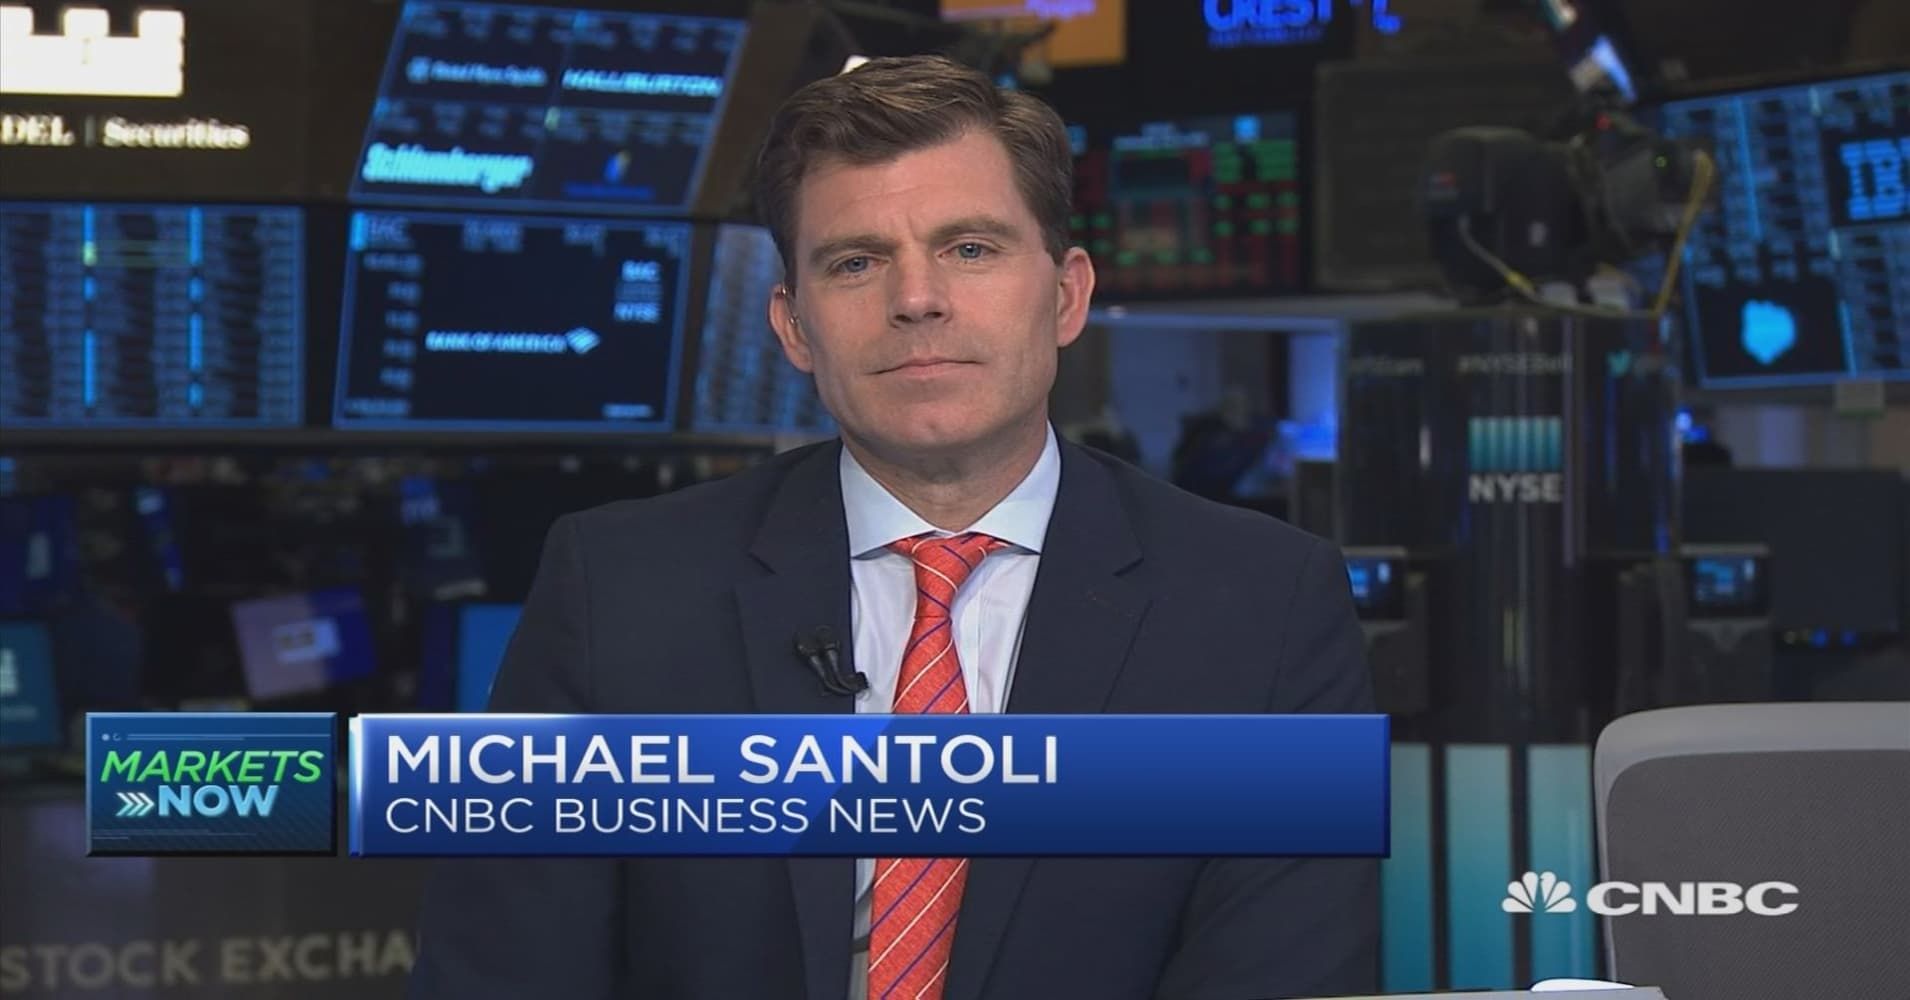 CNBC Markets Now: July 31, 2019